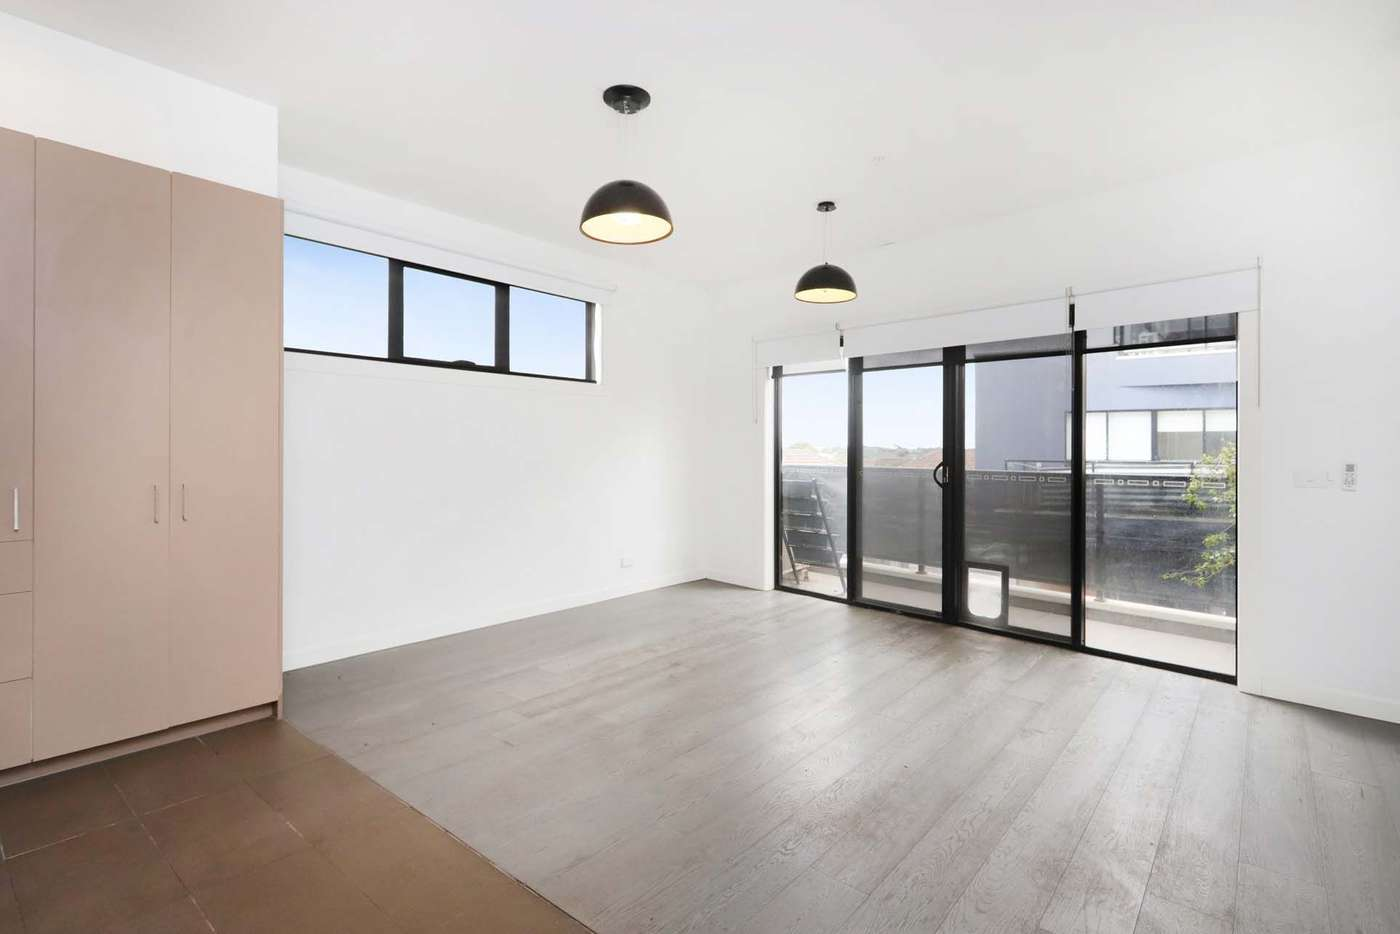 Main view of Homely apartment listing, 207/699c-703 Barkly Street, West Footscray VIC 3012